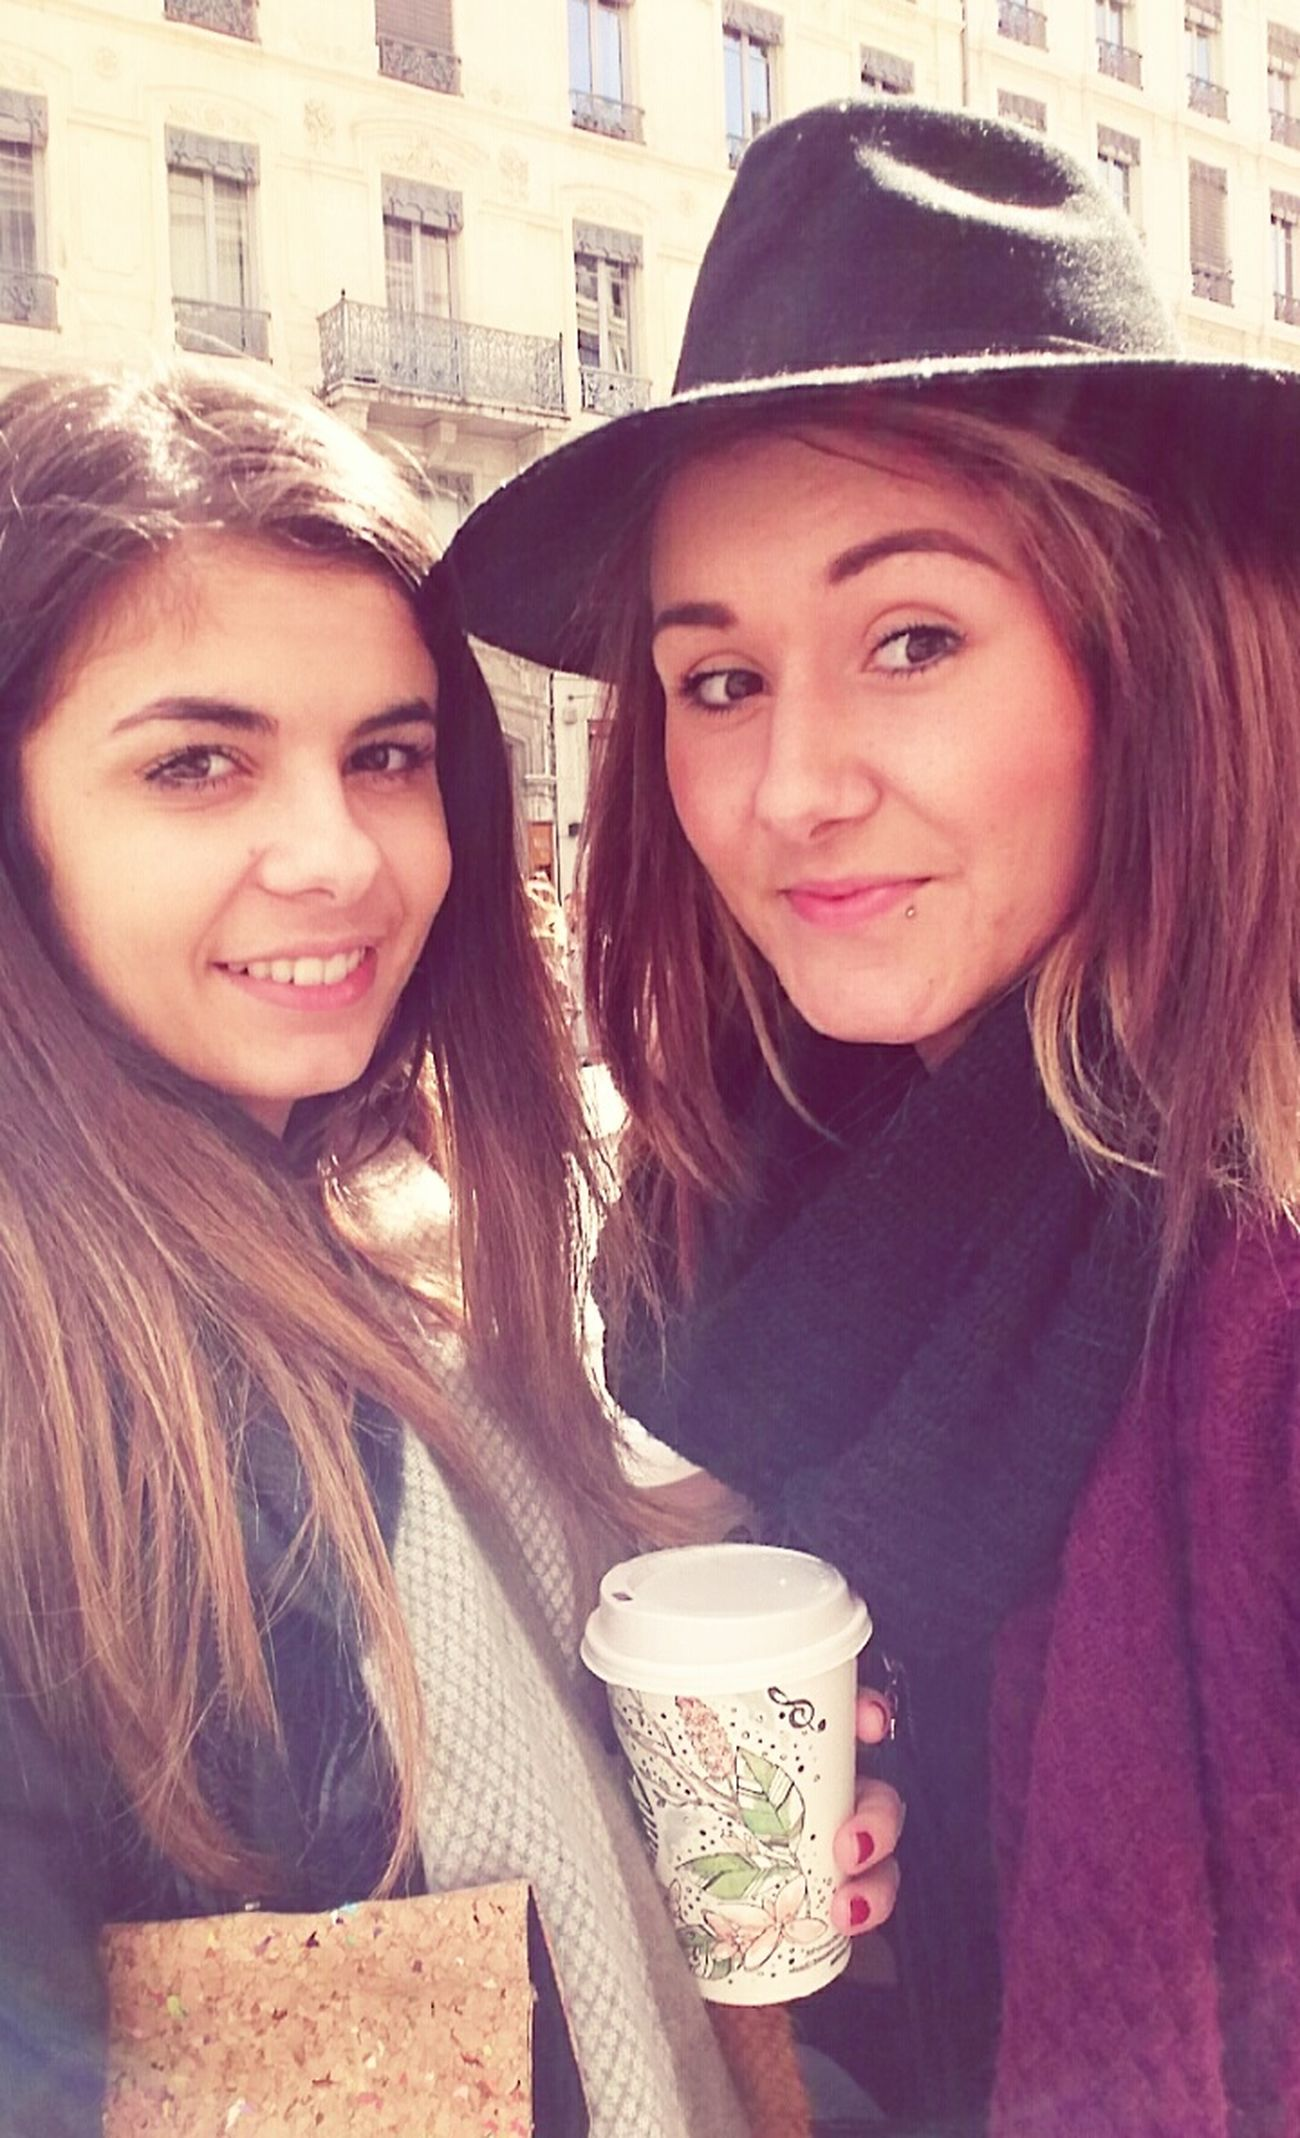 Friend Shopping Lyon Girlymoments Friendship. ♡   Be Yourself Starbucks Goodmoment Eyeem Picture Love ♥ The Only Moment Where I Think At Nothing..